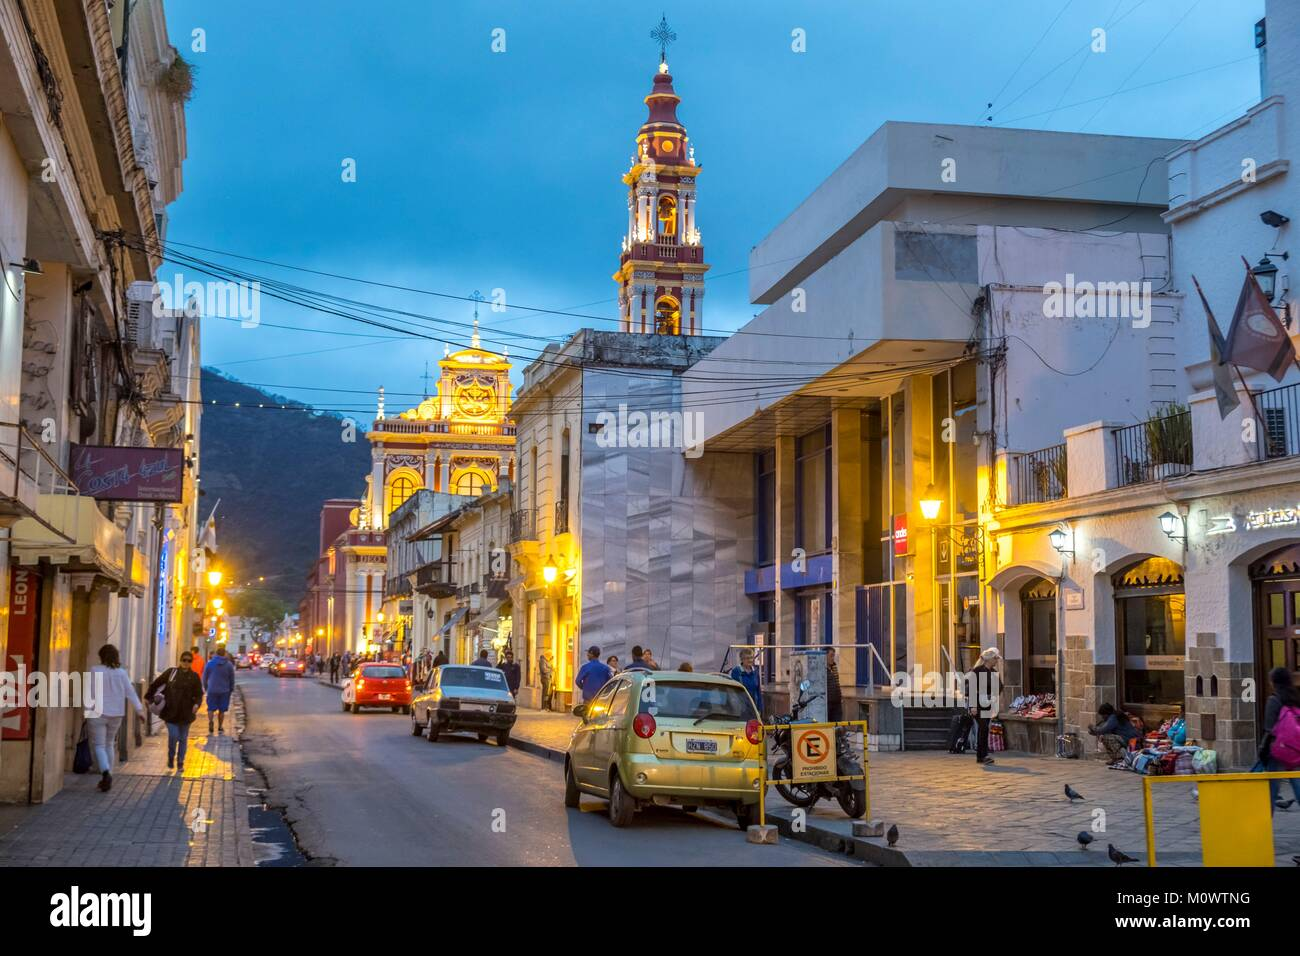 Argentina,Salta province,Salta,San Francisco church - Stock Image